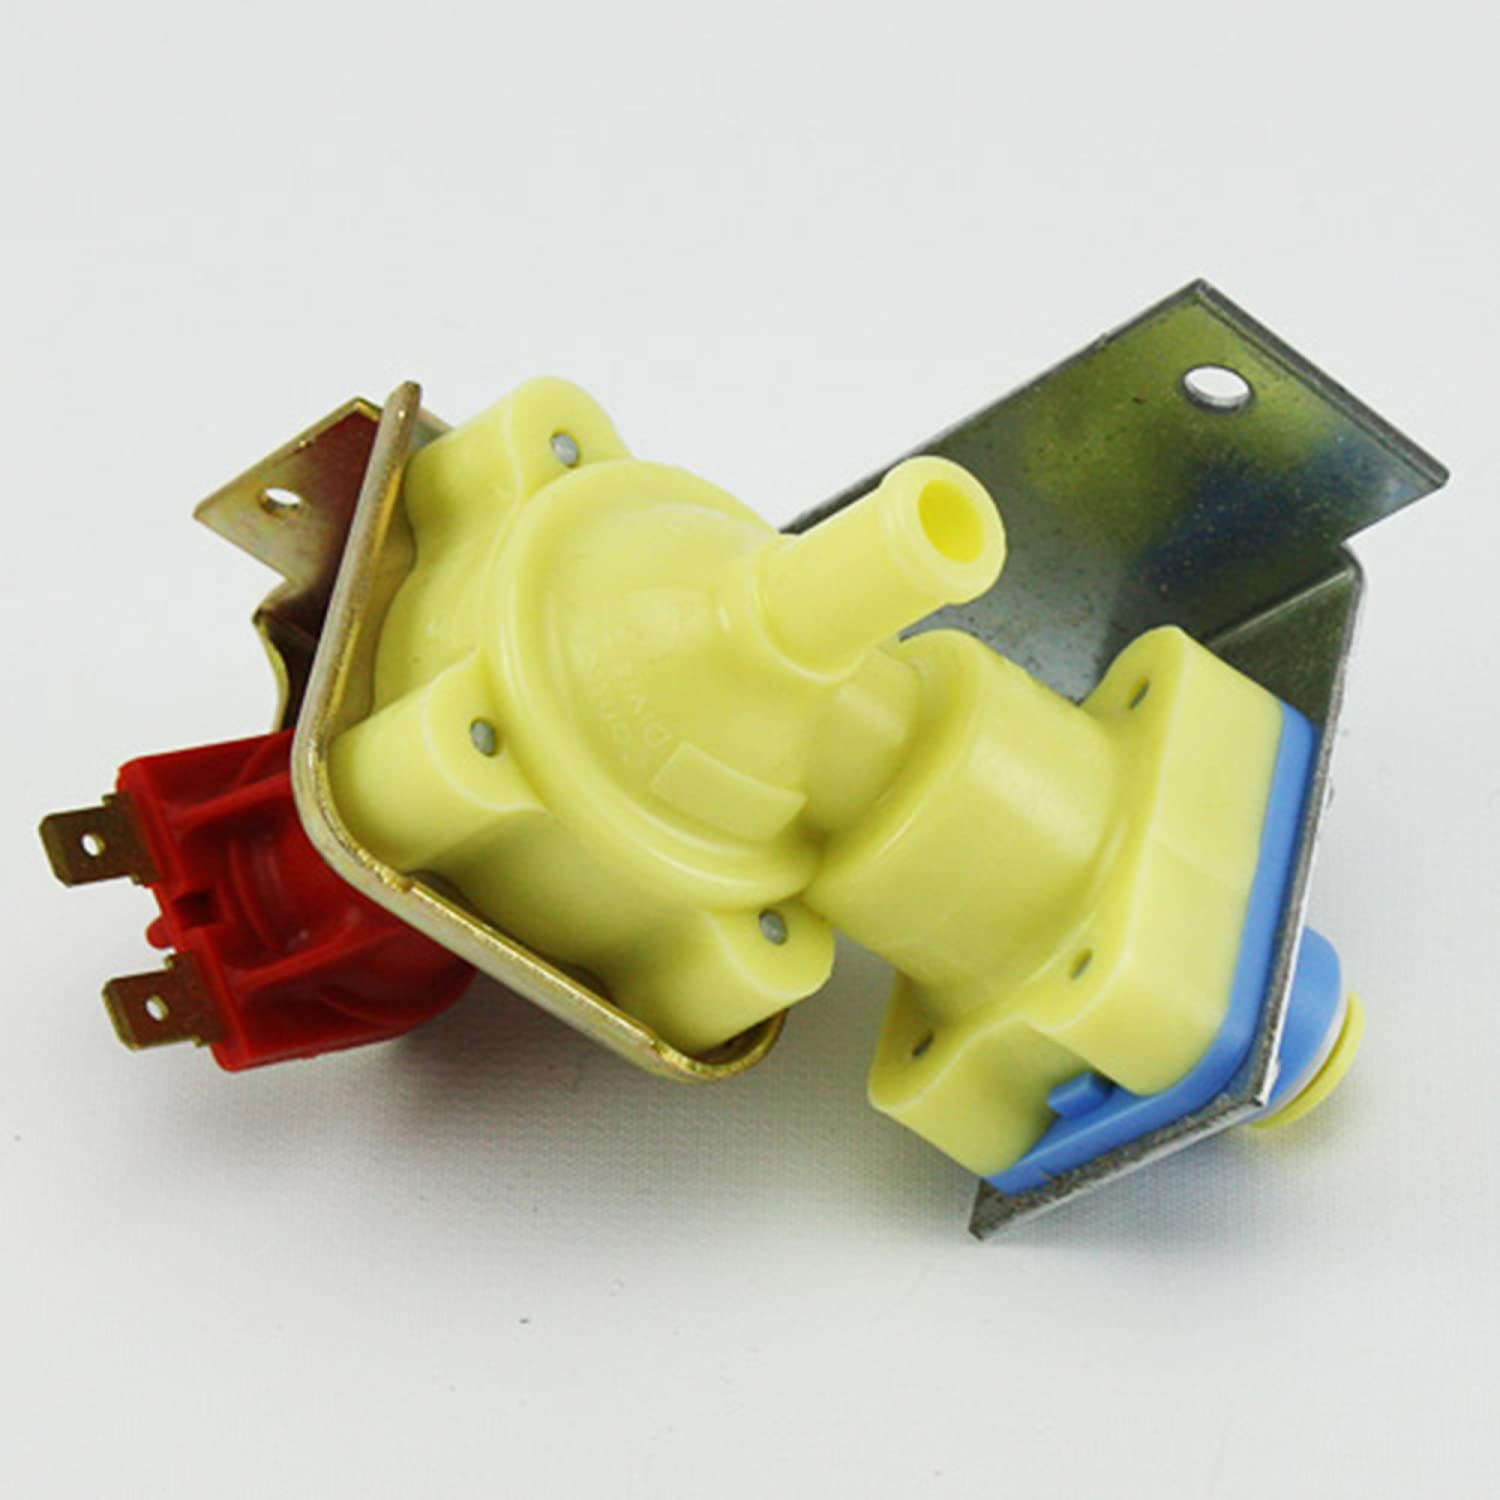 IMV-0402 Replaces Manitowoc 000000402 Commercial Ice Machine Valve S-53